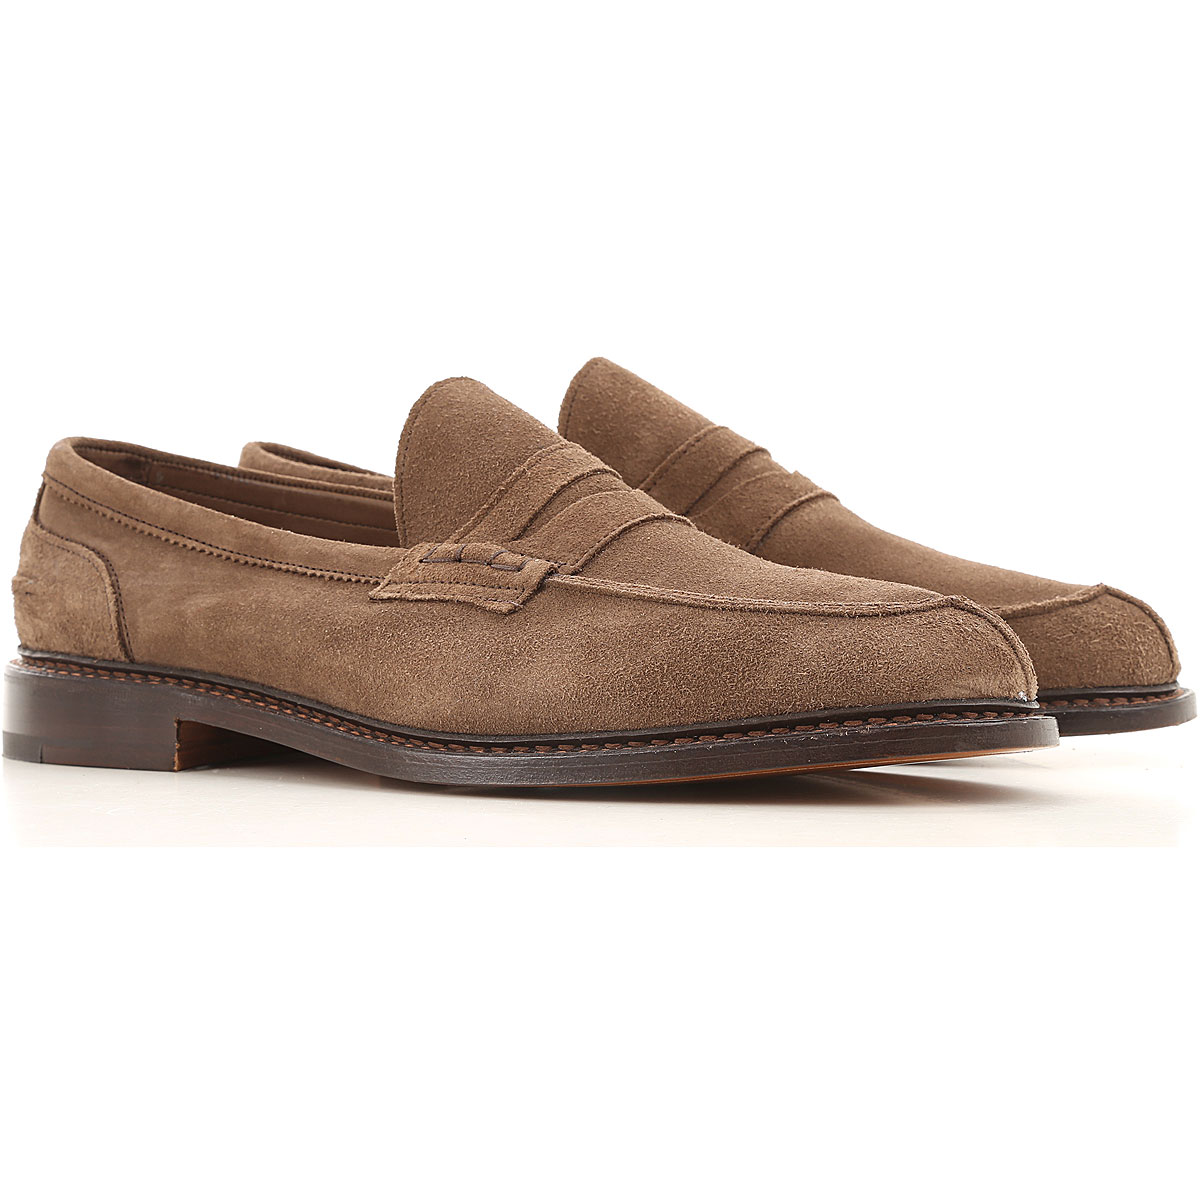 Trickers Loafers for Men On Sale, Brown, suede, 2019, 10 10.5 8 8.5 9 9.5